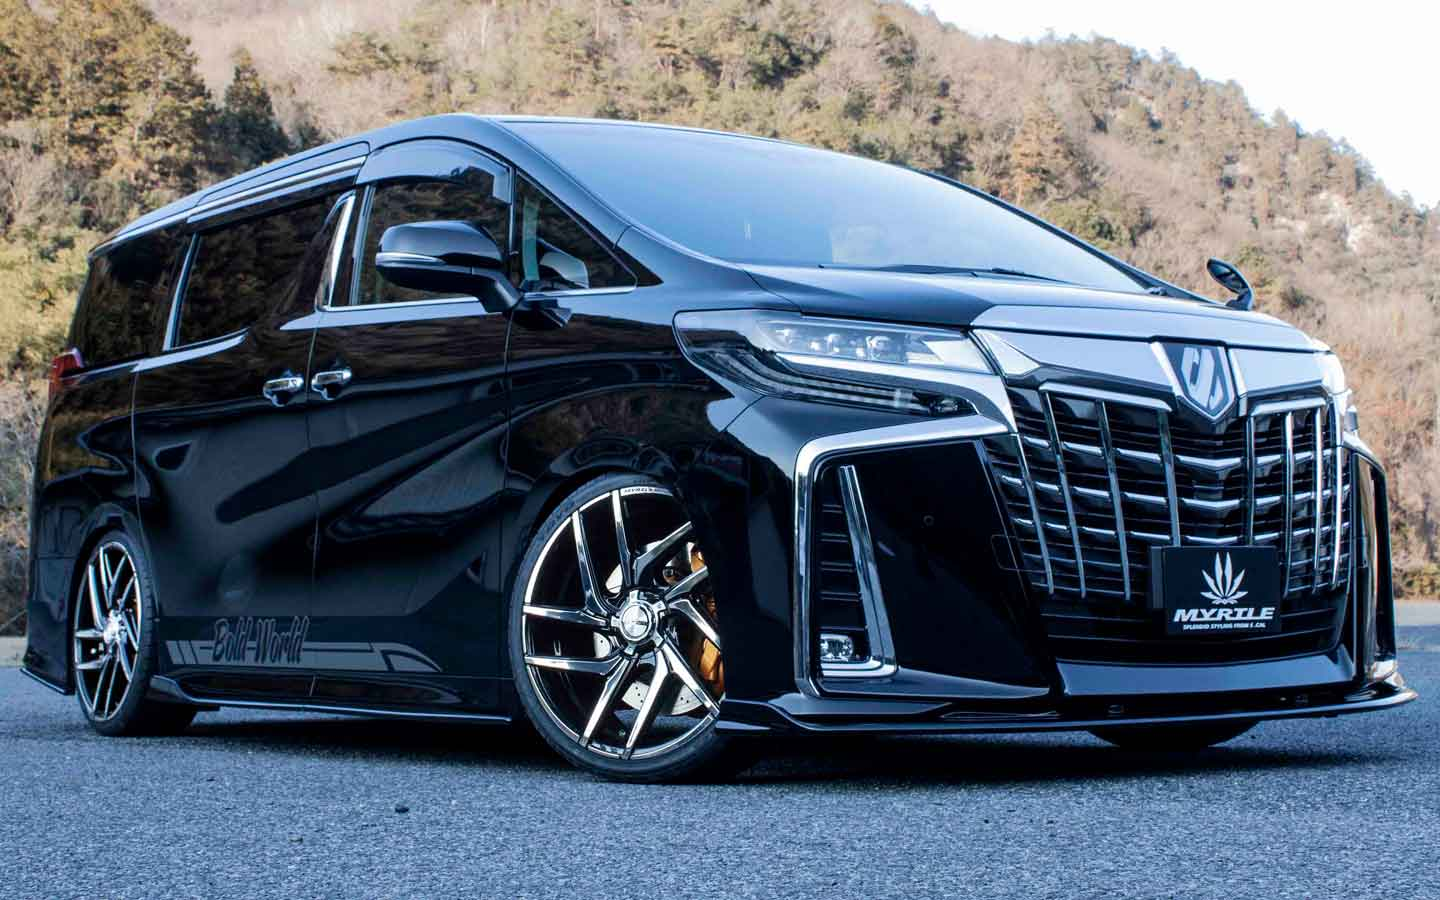 LUCAS [BLACK METALCOAT] (attached to ALPHARD)